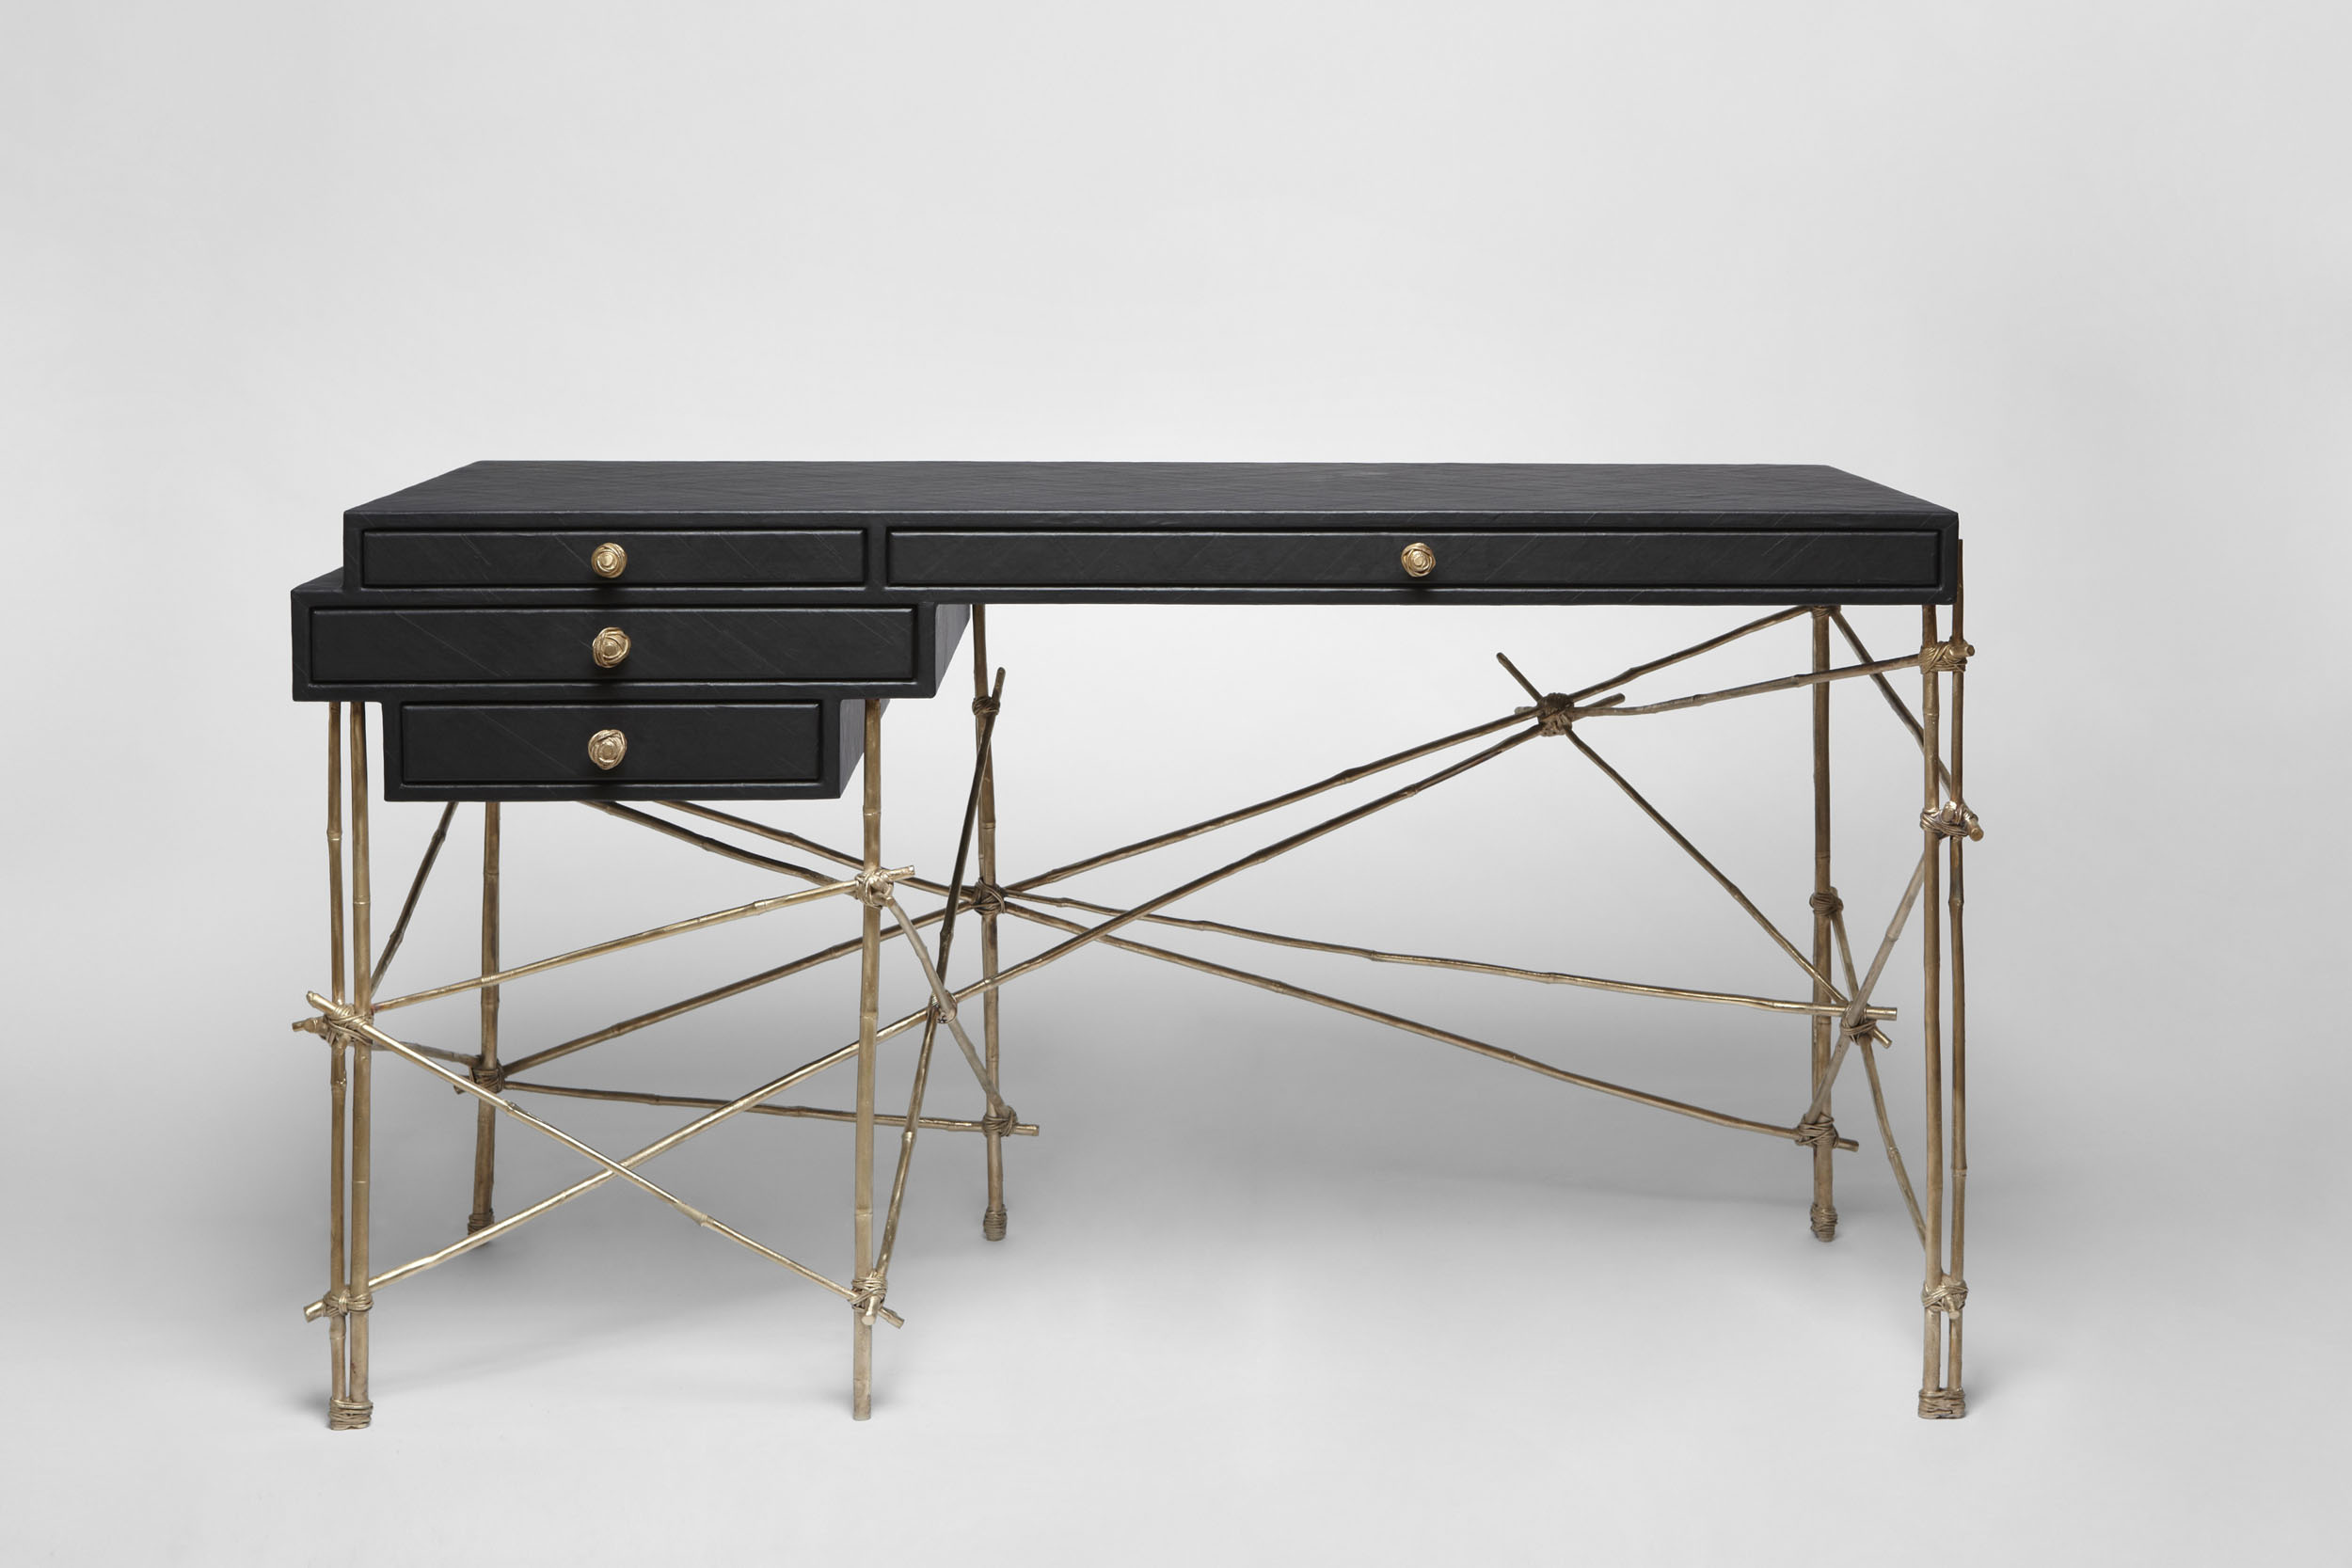 Rendezvous desk bronze cast bamboo frame and black gum paper drawers